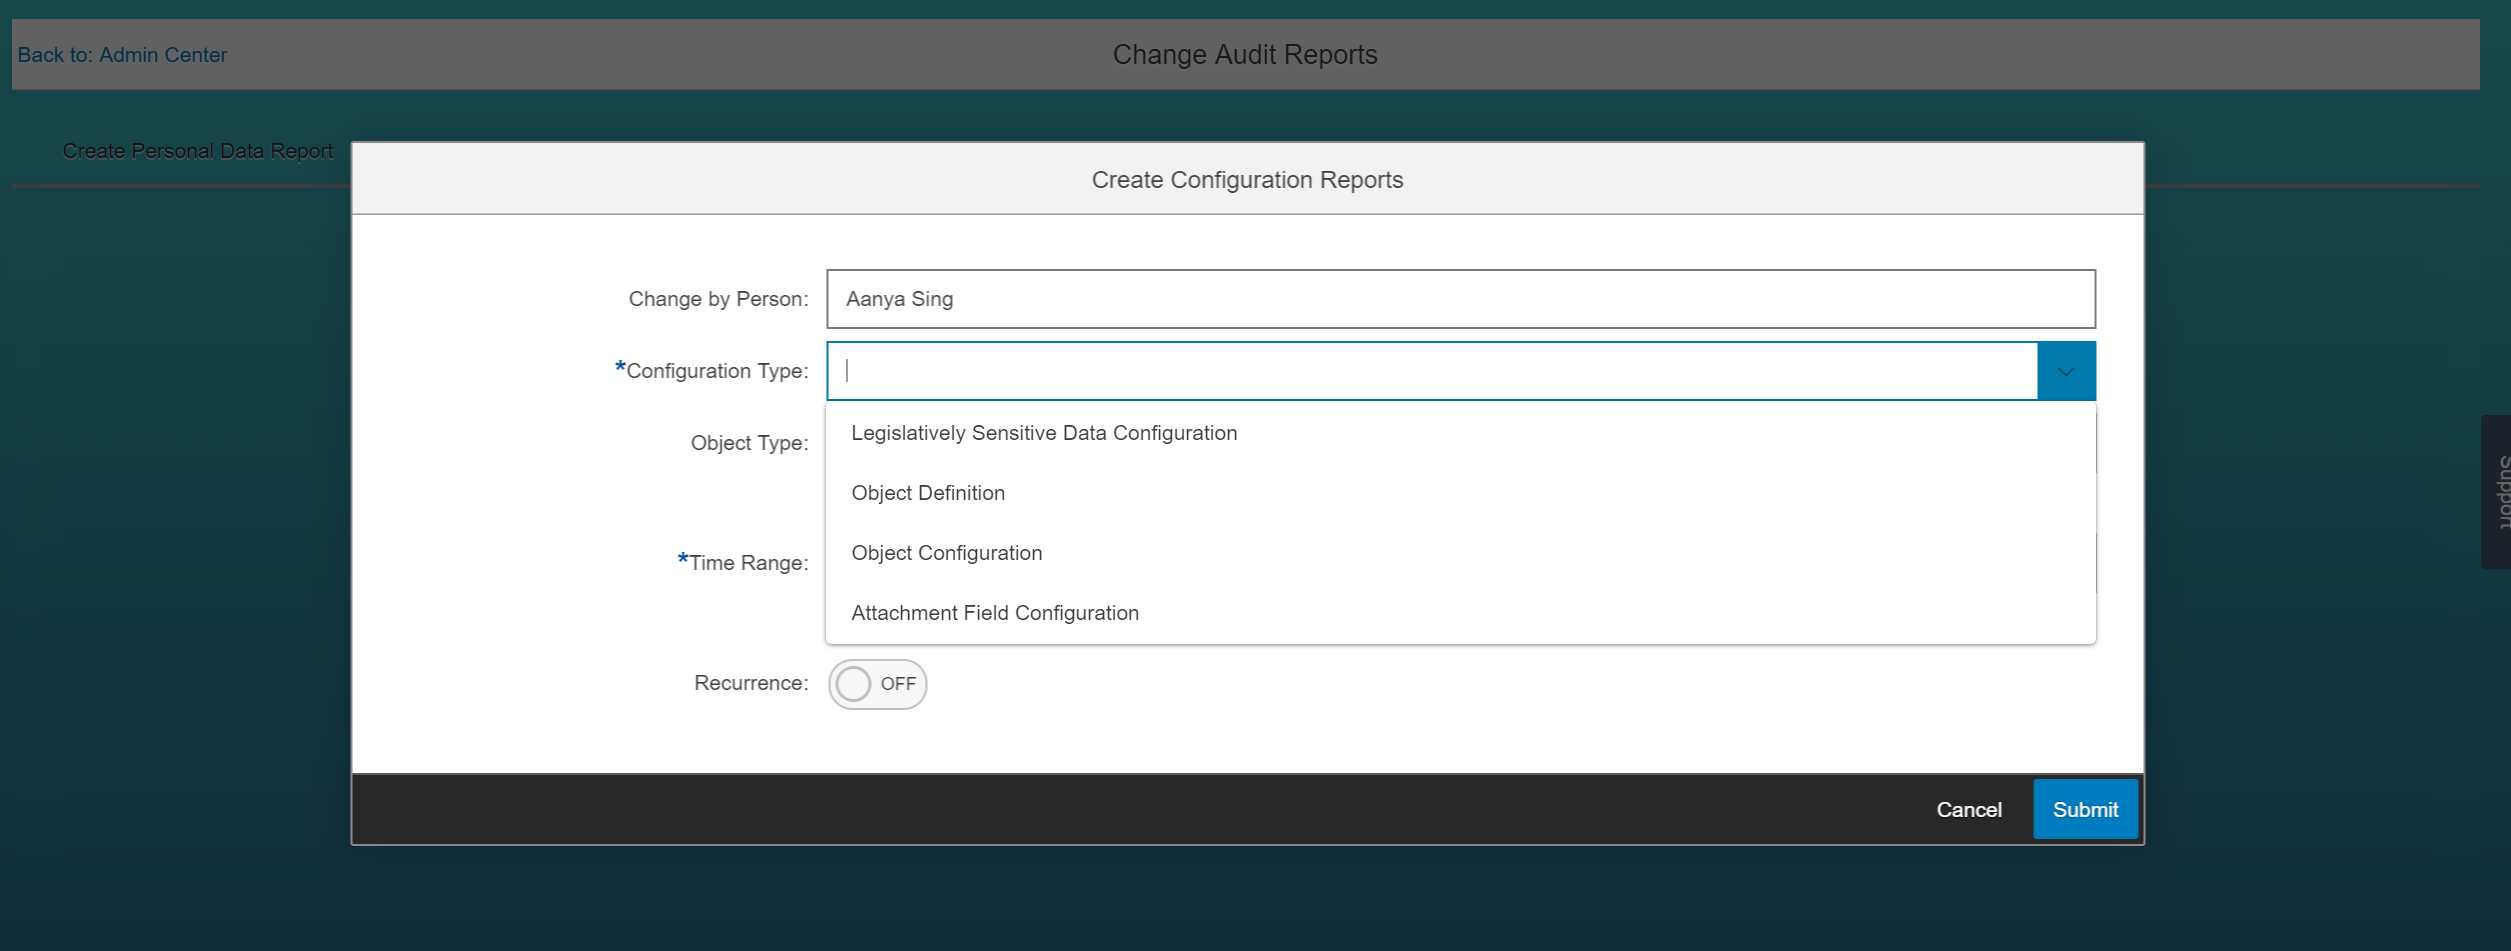 Create Configuration Reports - MDF Data.png